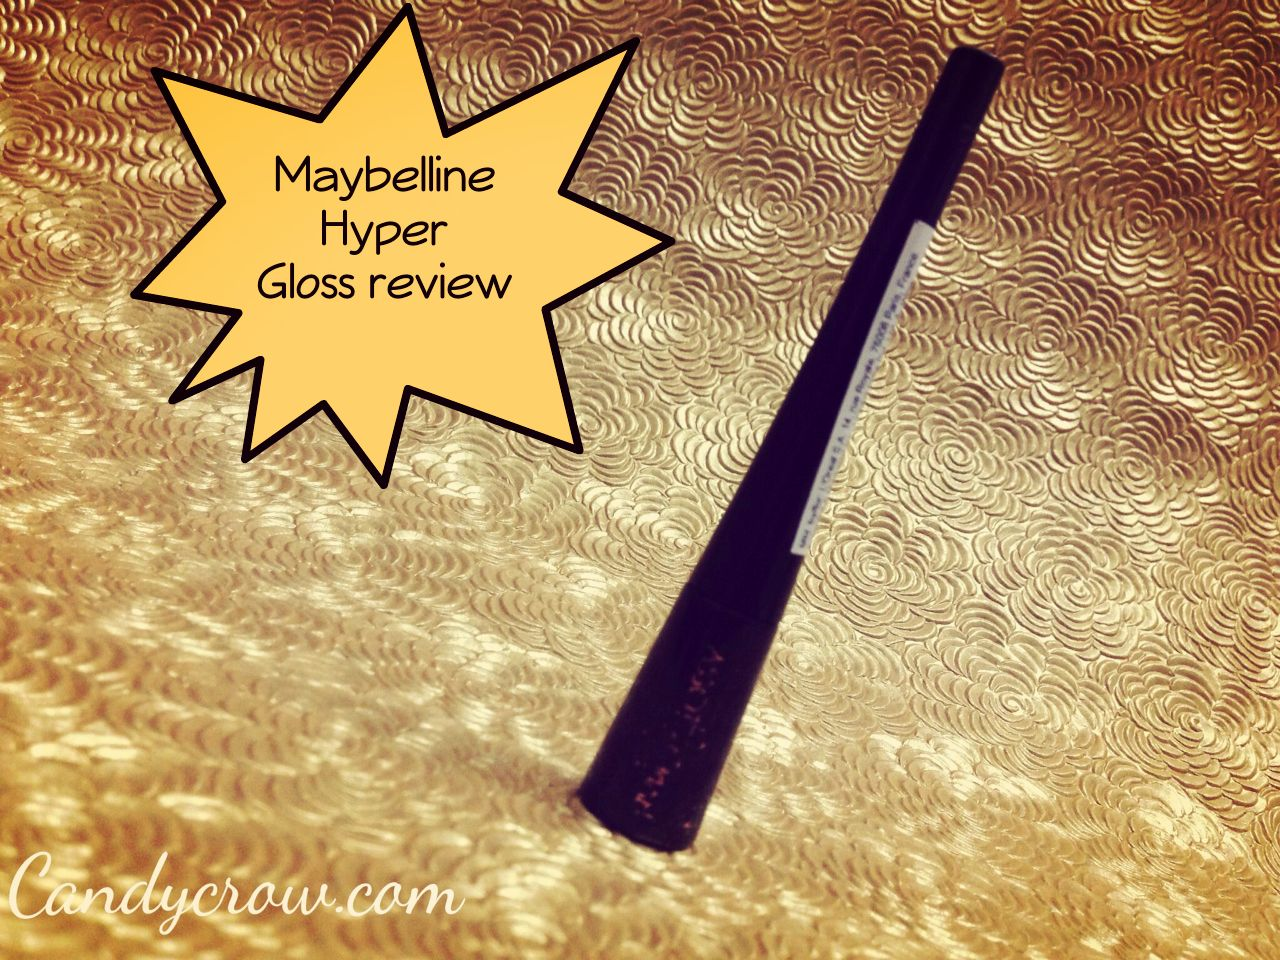 Maybelline Hyper Glossy Liquid Eyeliner - Black Review